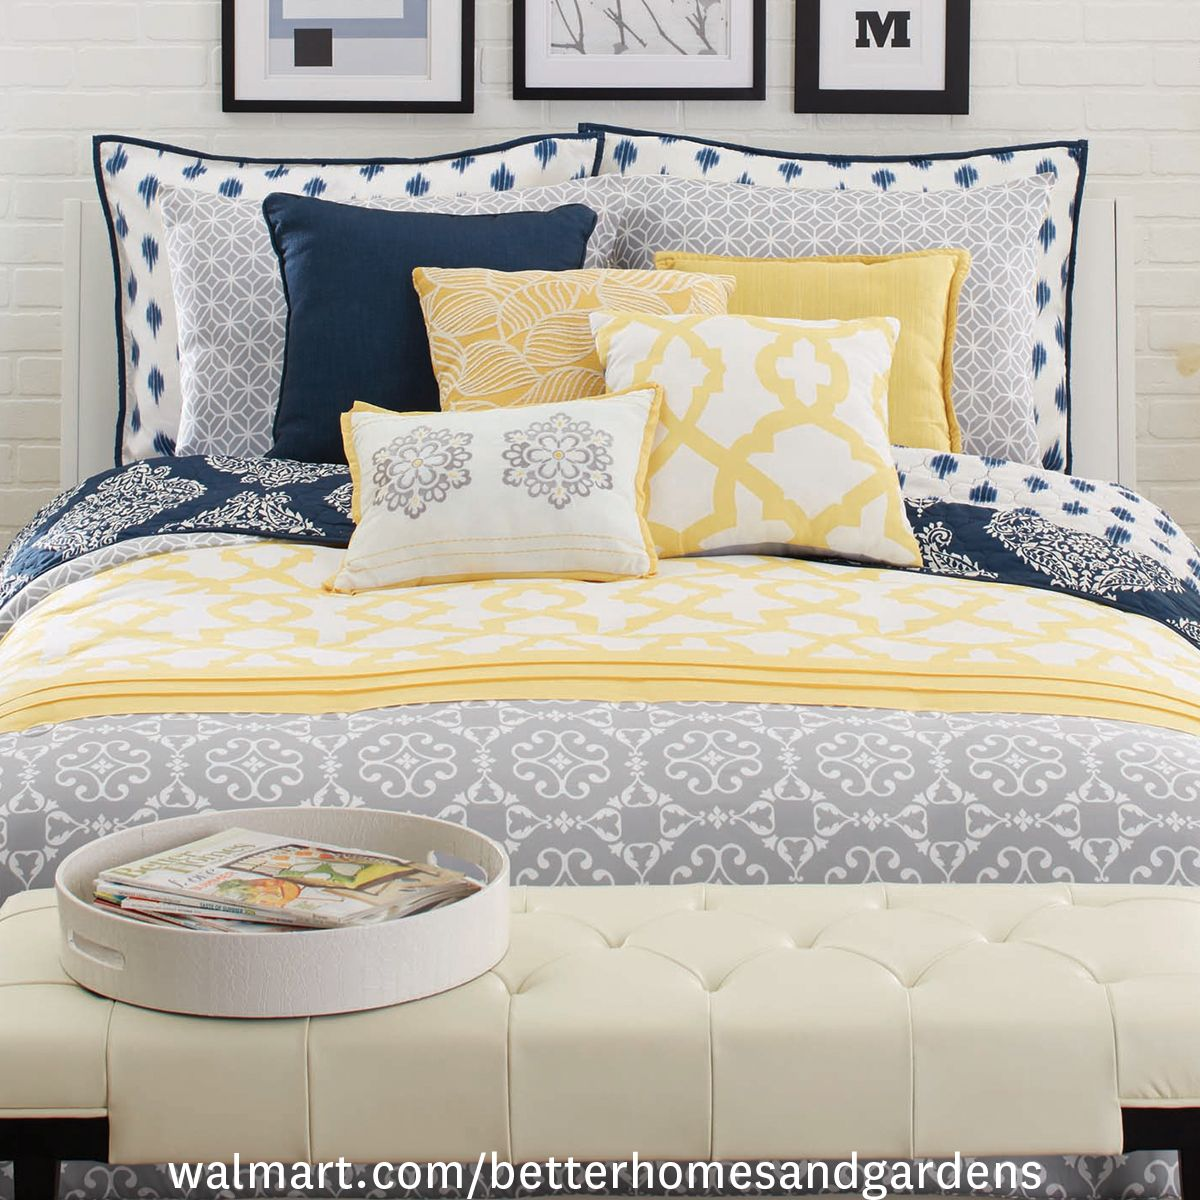 Better Homes and Gardens Yellow and Gray Medallion 5 Piece Bedding     Better Homes and Gardens Yellow and Gray Medallion 5 Piece Bedding  Comforter Set   Walmart com